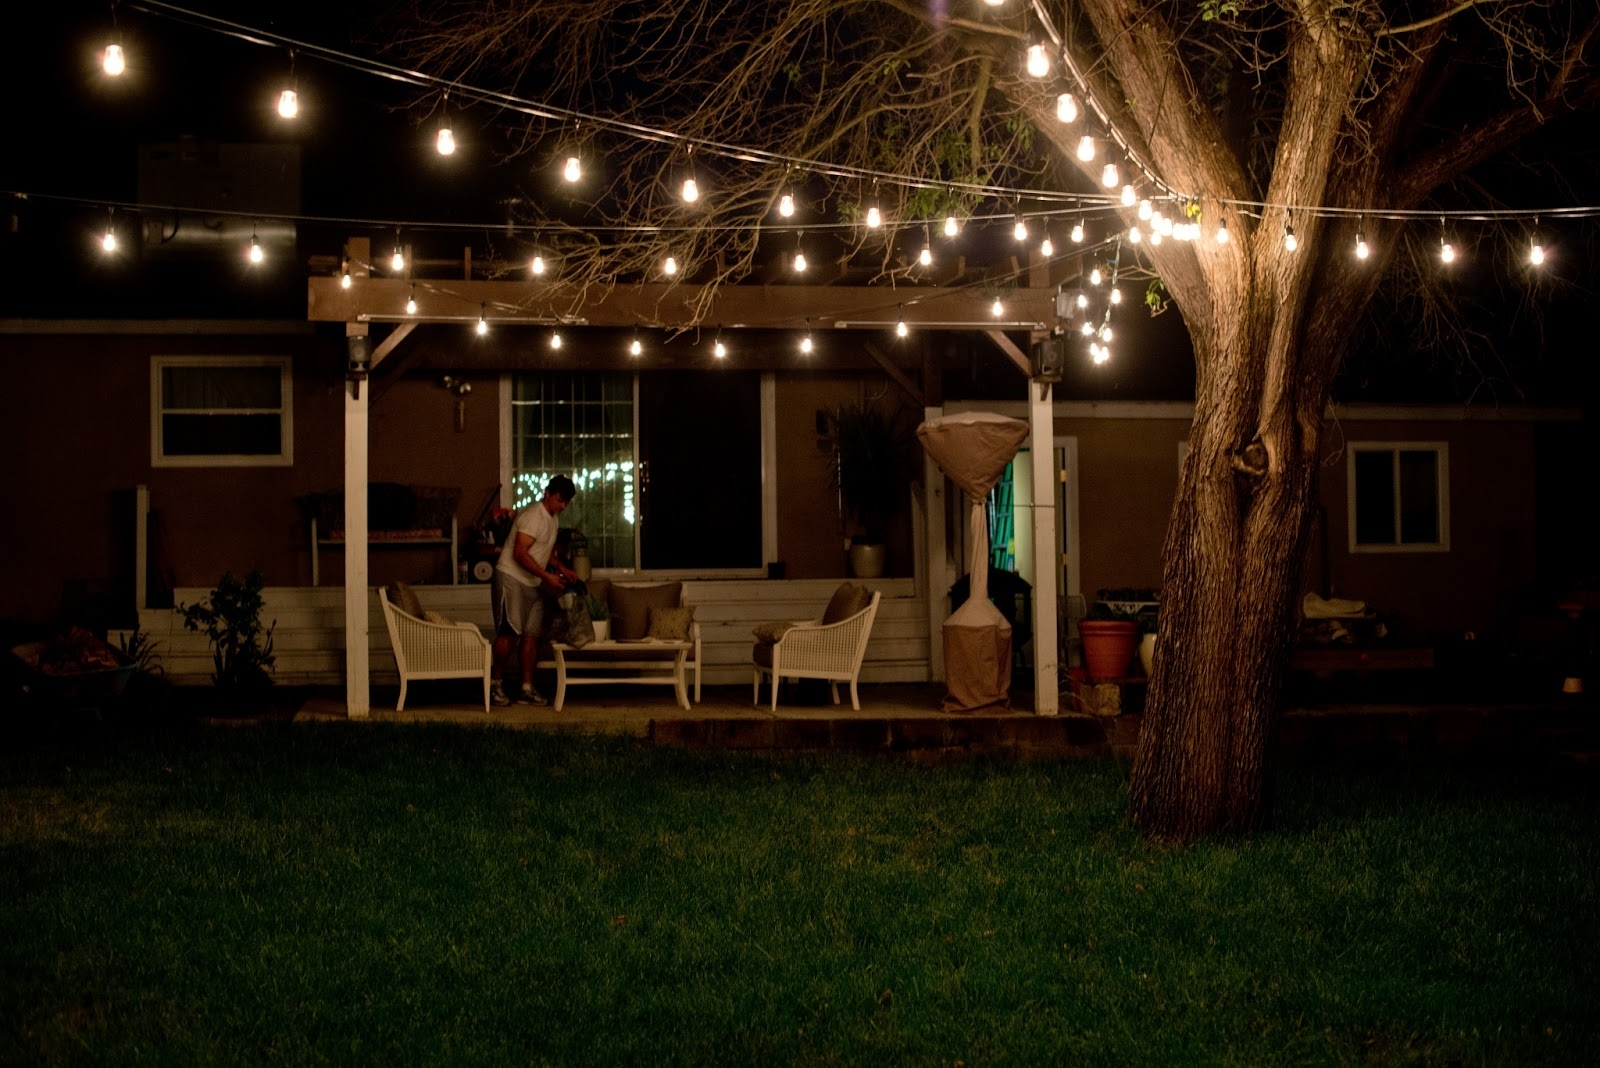 Hanging String Lights Outdoors Amazing Patio Bright July Diy Outdoor Pertaining To Outdoor Hanging Wall Lights (#7 of 18)